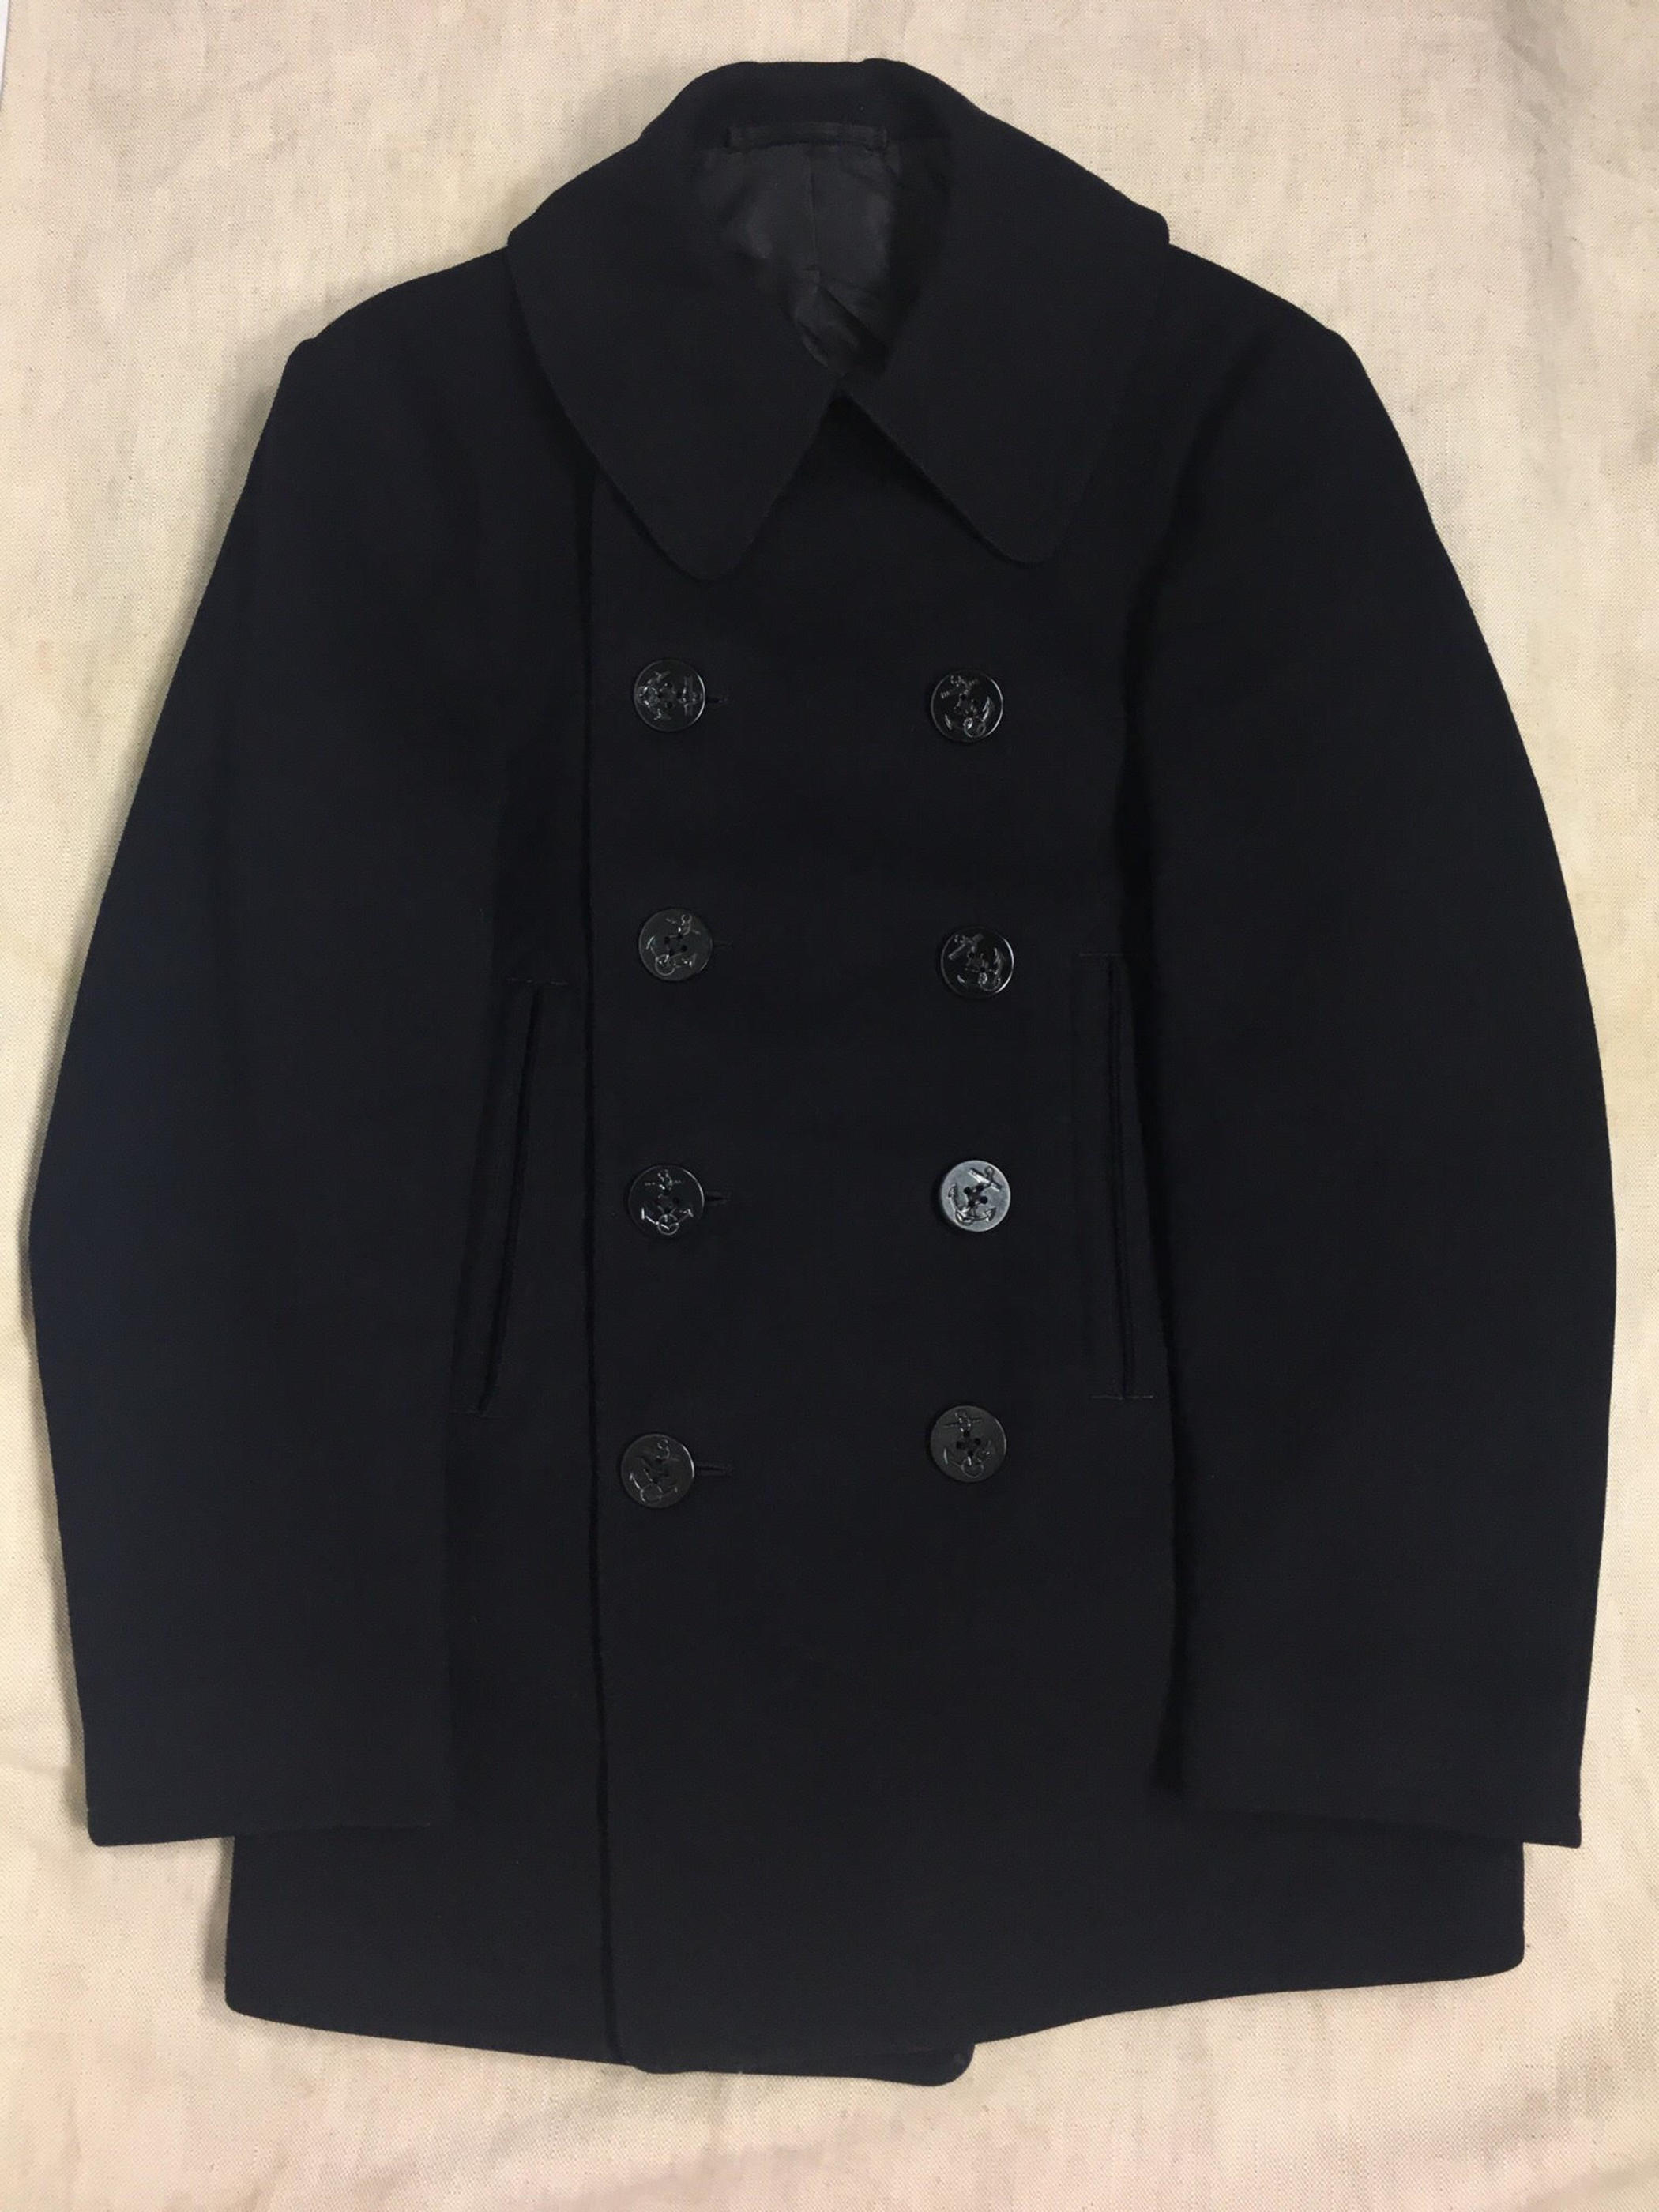 40's U.S NAVY Vintage 10 Botton P-coat  U.SネイビーPコート[size34]